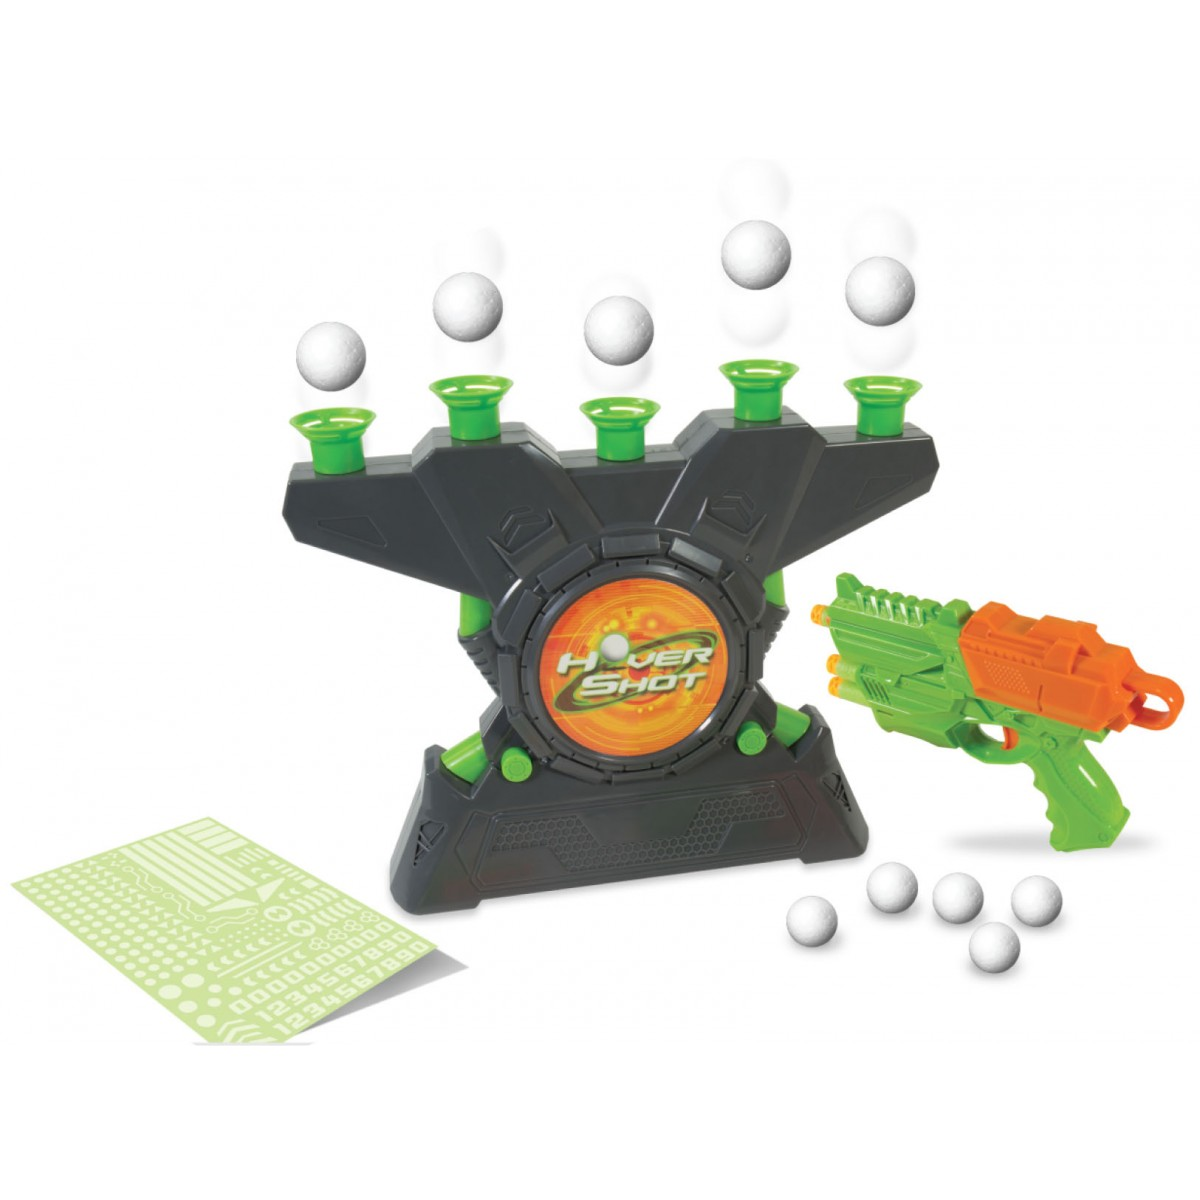 air powered blaster Hover Shot 2.0 Game foam darts with glow in the dark